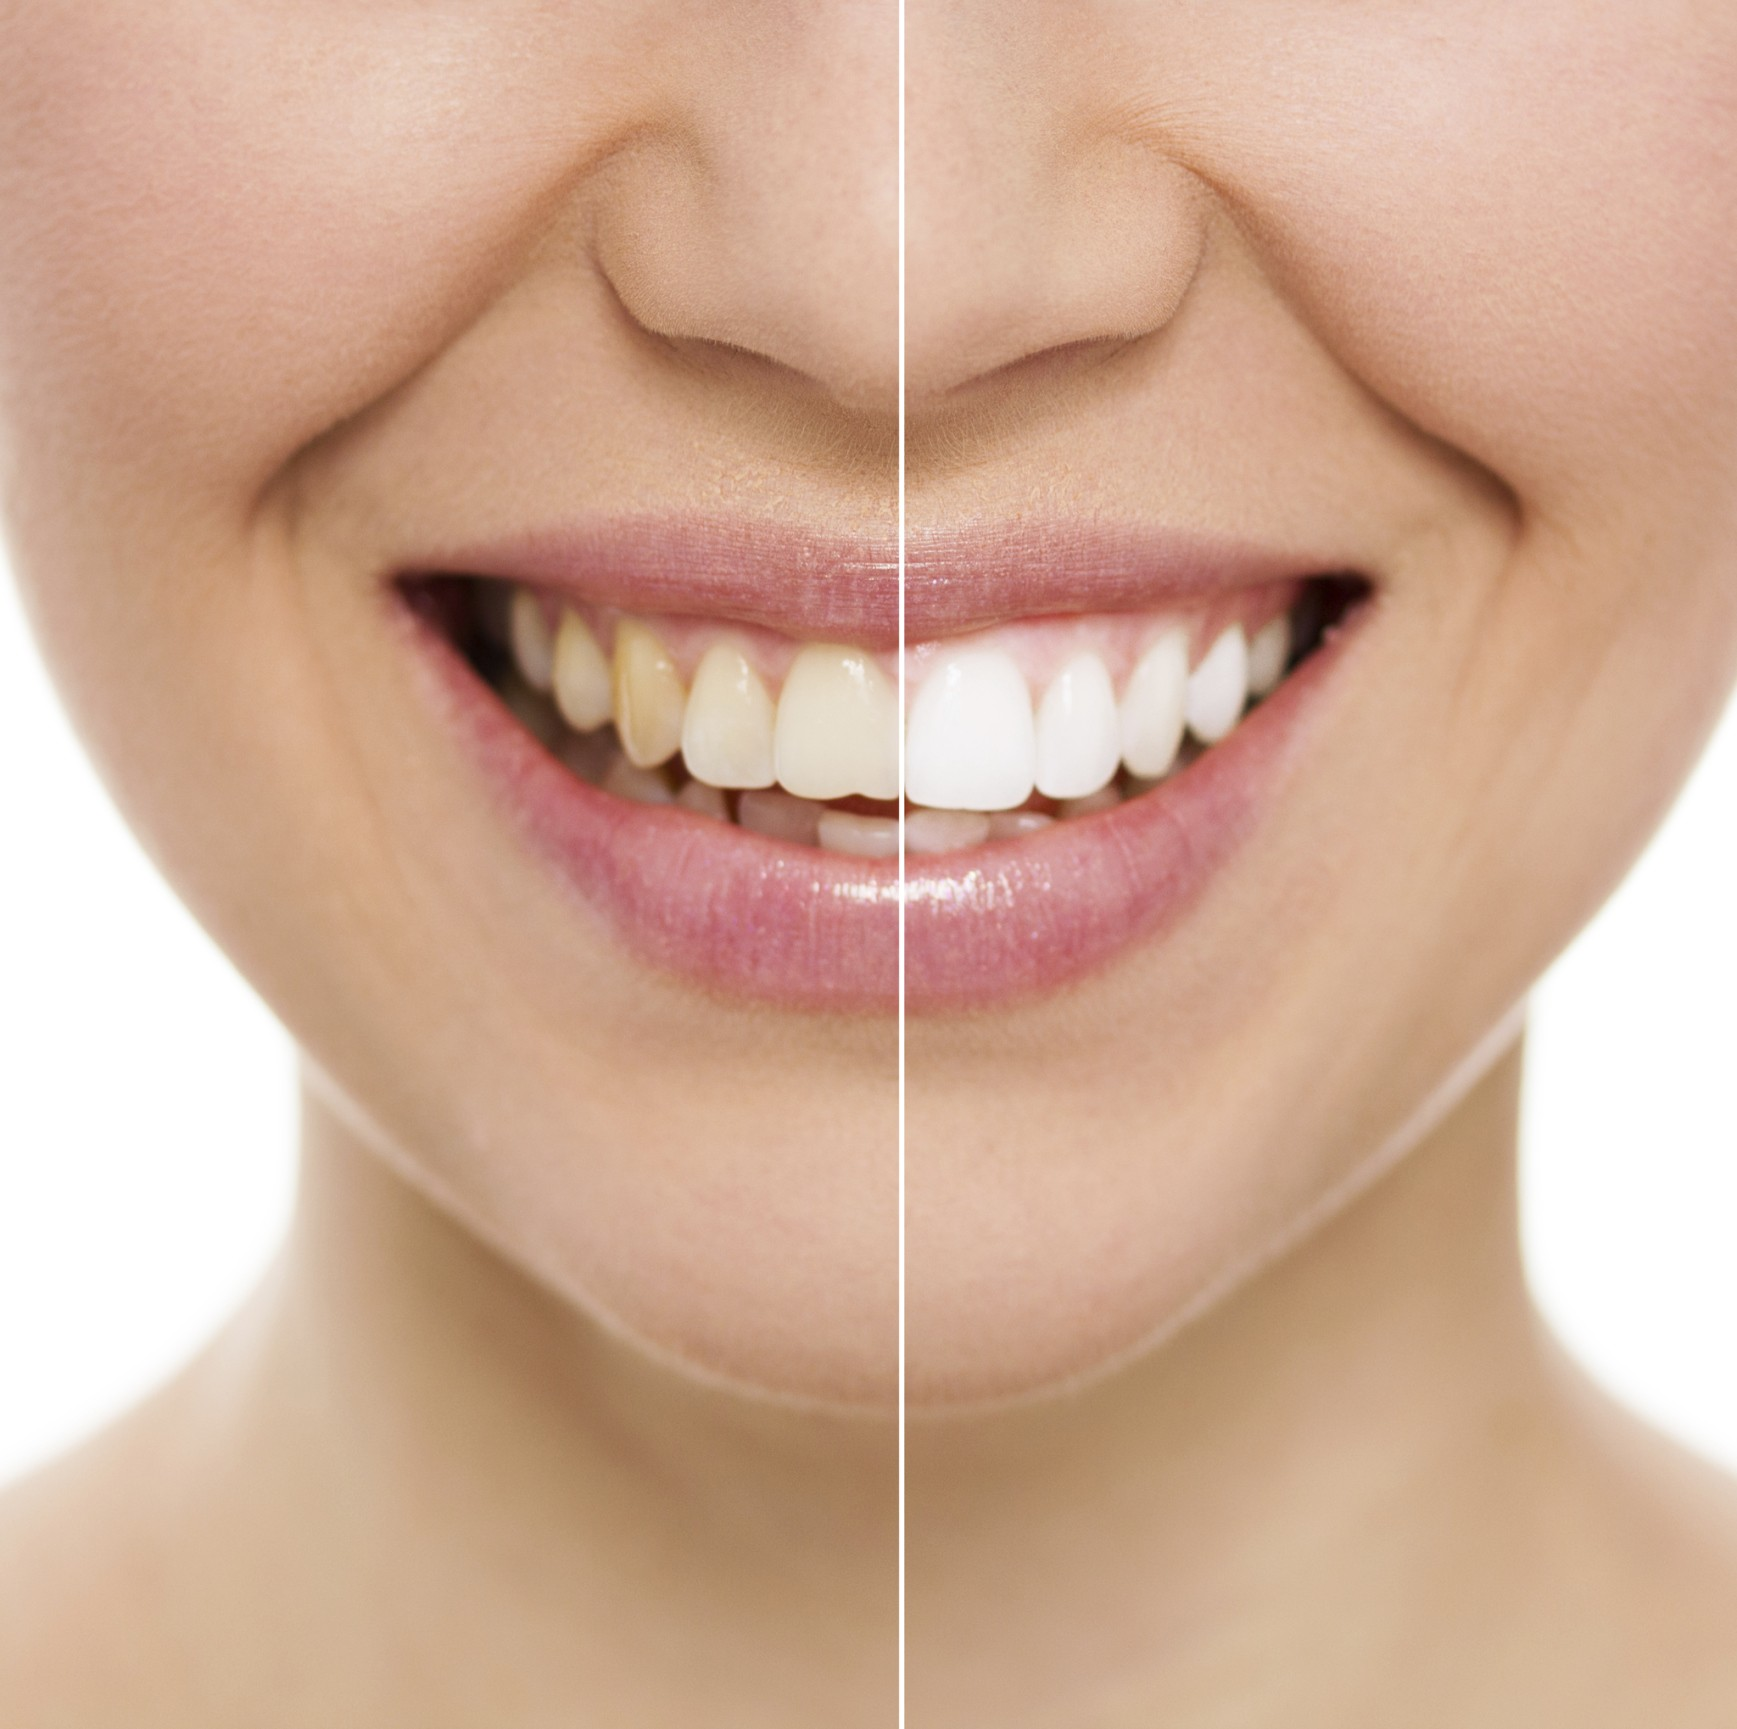 Affordable Cosmetic Dentistry In Dominion Road Mount Roskill, Mount Albert, Sandringham, Avondale, Three Kings, Auckland